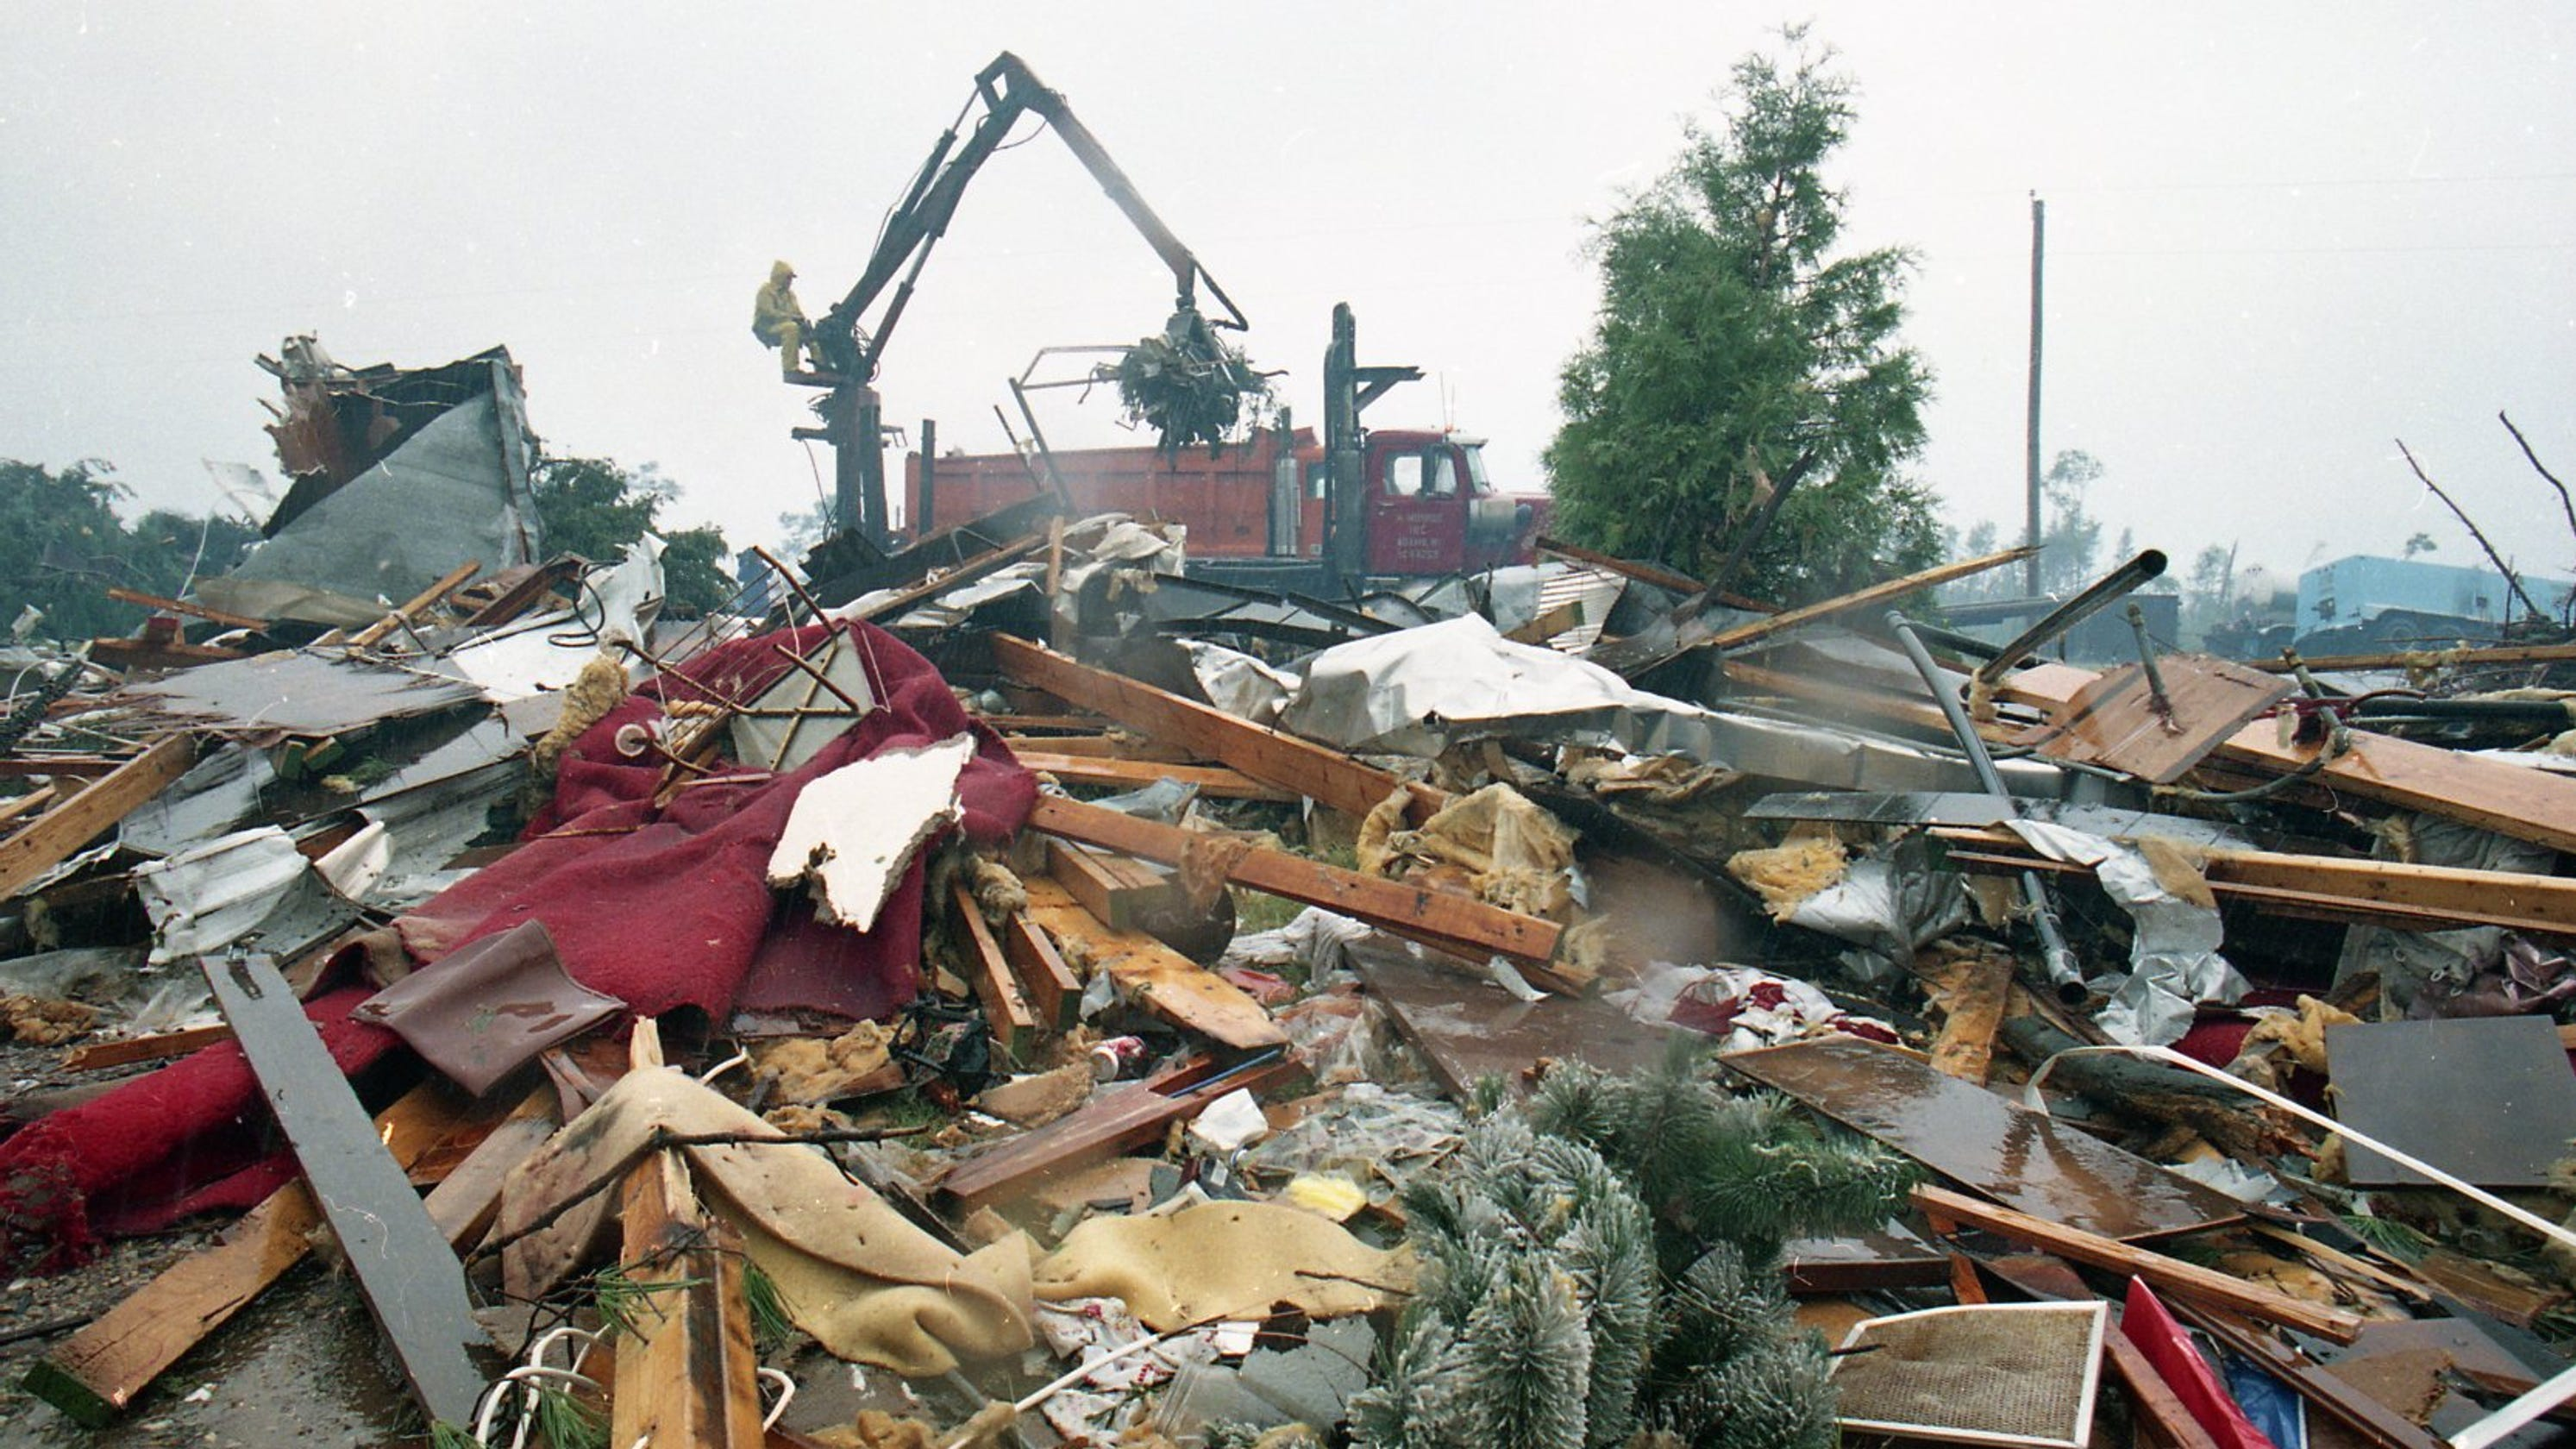 Big Flats, Wisconsin tornado of 1994 remembered 25 years later